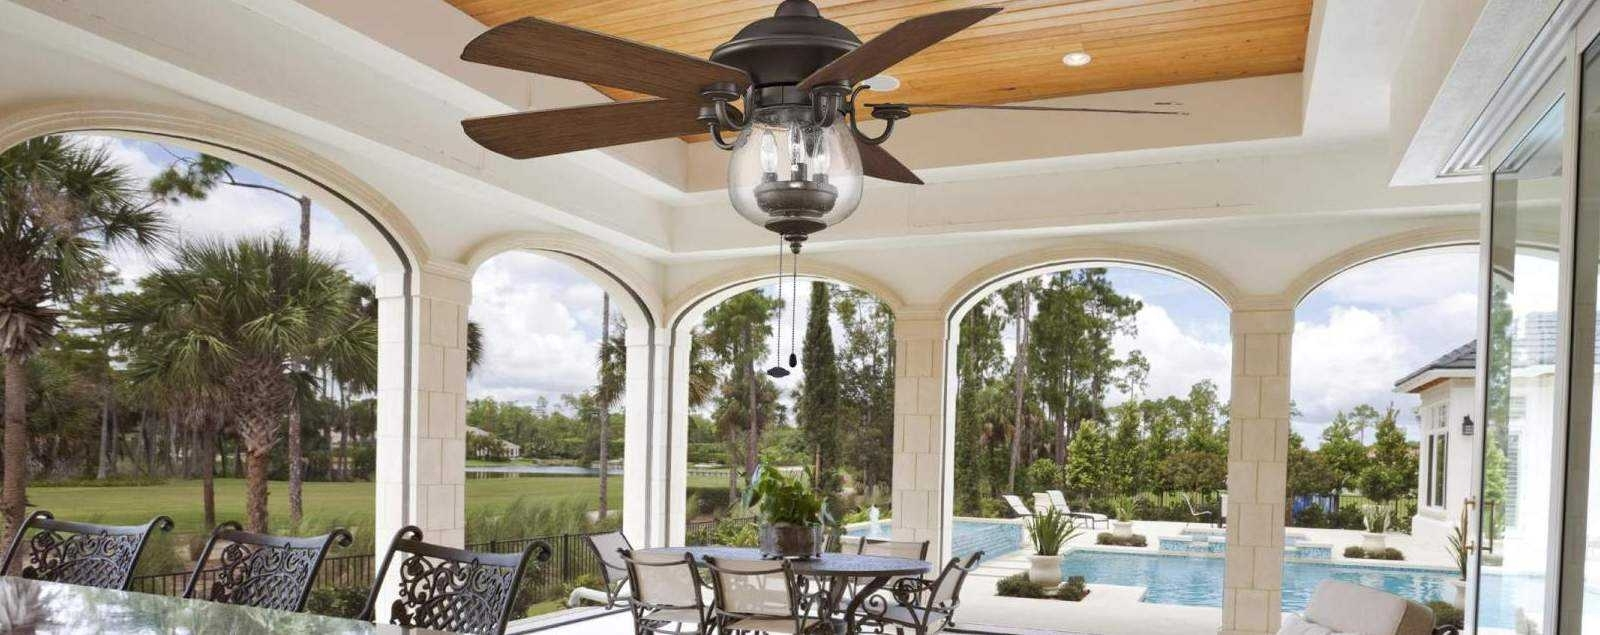 Outdoor Ceiling Fans Hansen Ideas With Incredible Exterior For With 2018 Outdoor Ceiling Fans For Porches (View 16 of 20)